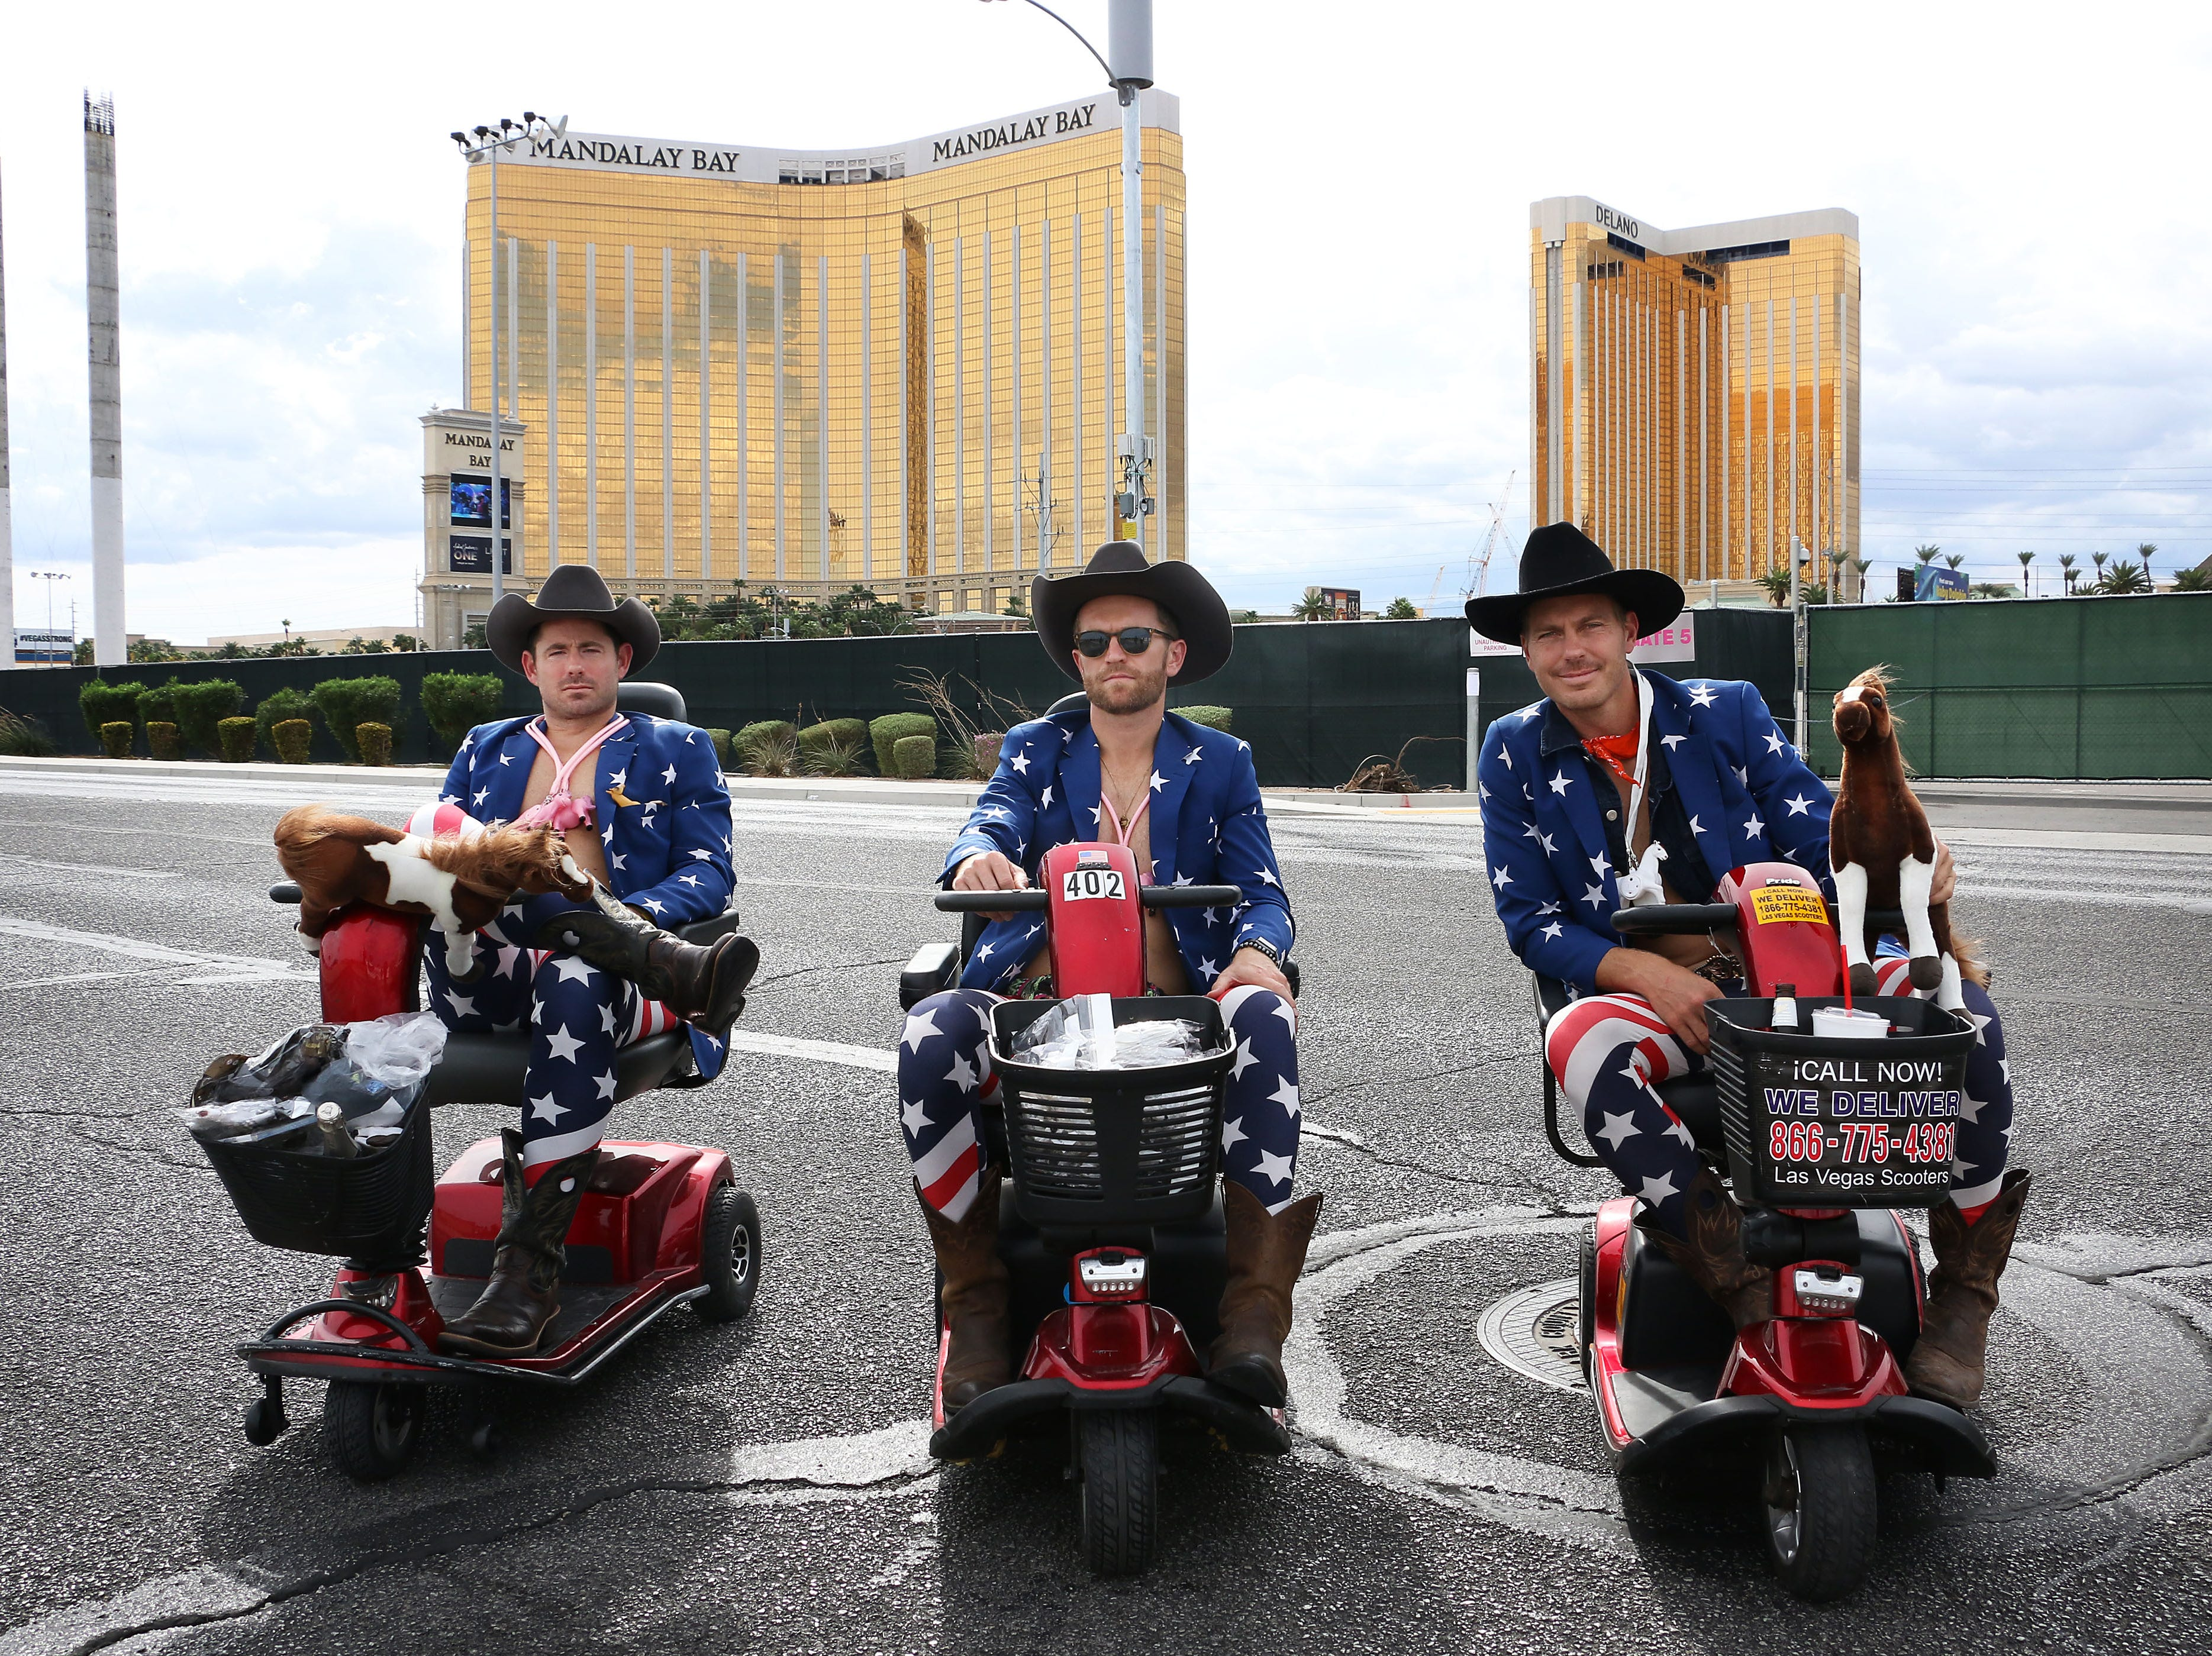 From left, survivors Josh Zeyak, Dylan Mason and Leo Van Warmerdam pose for a portrait in front of the Route 91 Harvest Festival concert grounds as Las Vegas remembers the mass shooting one year later on Oct. 1, 2018.  The three men are wearing exactly the same outfits they wore to the festival one year ago. The FBI recovered their jackets for them.  They also rode scooters, for fun, to the festival.